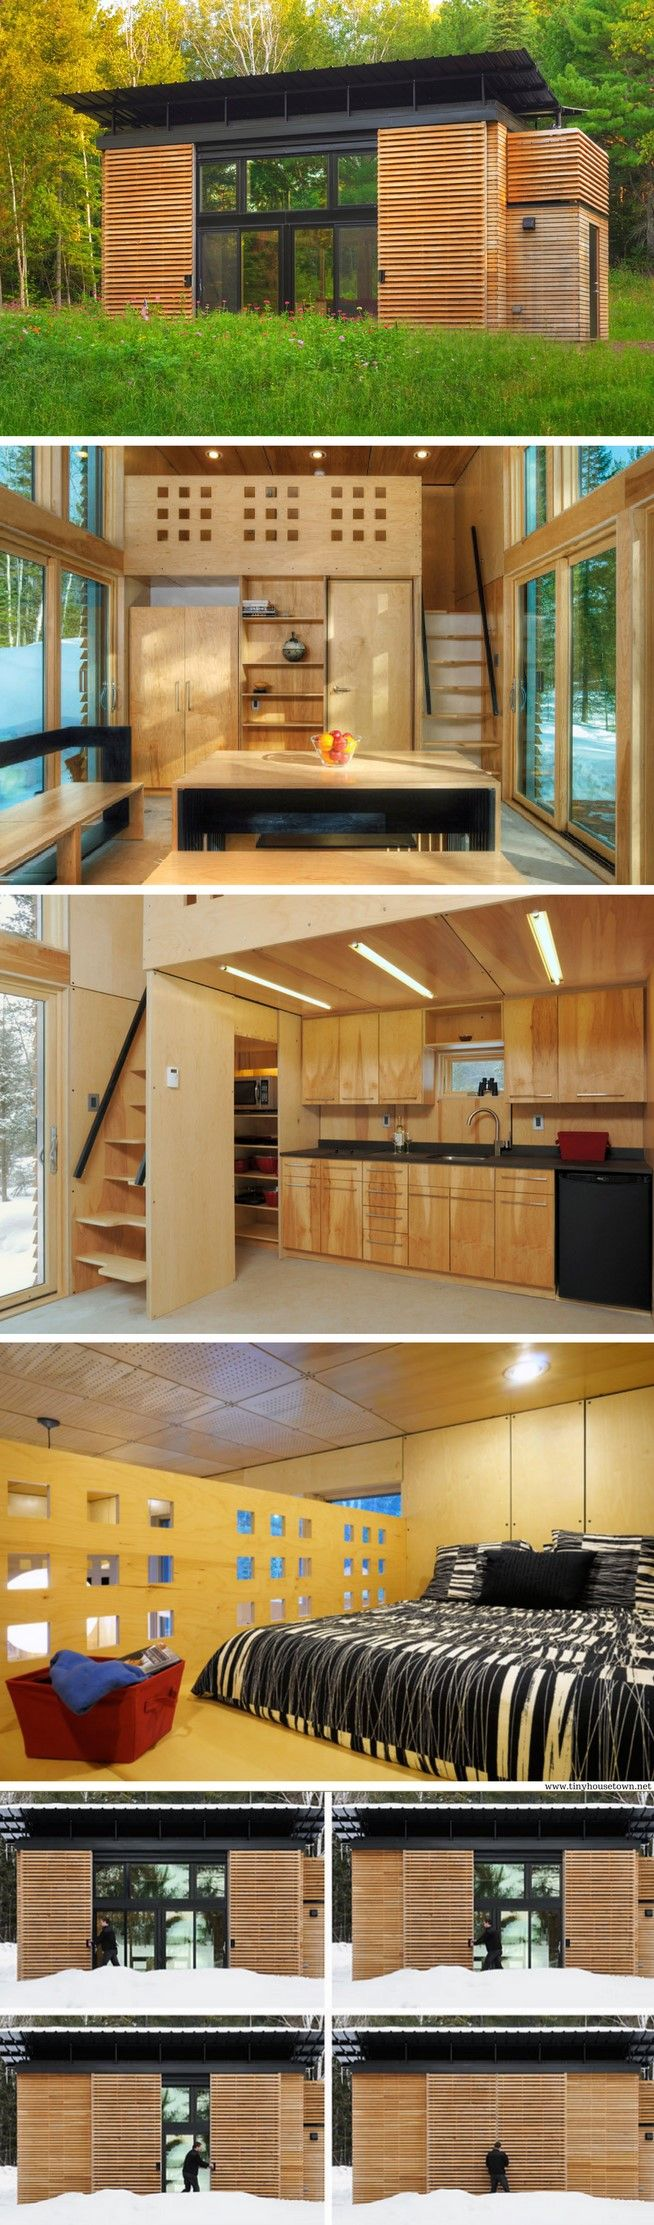 Home-fitness-studio-innenarchitektur  best ideas for the house images on pinterest  modern homes